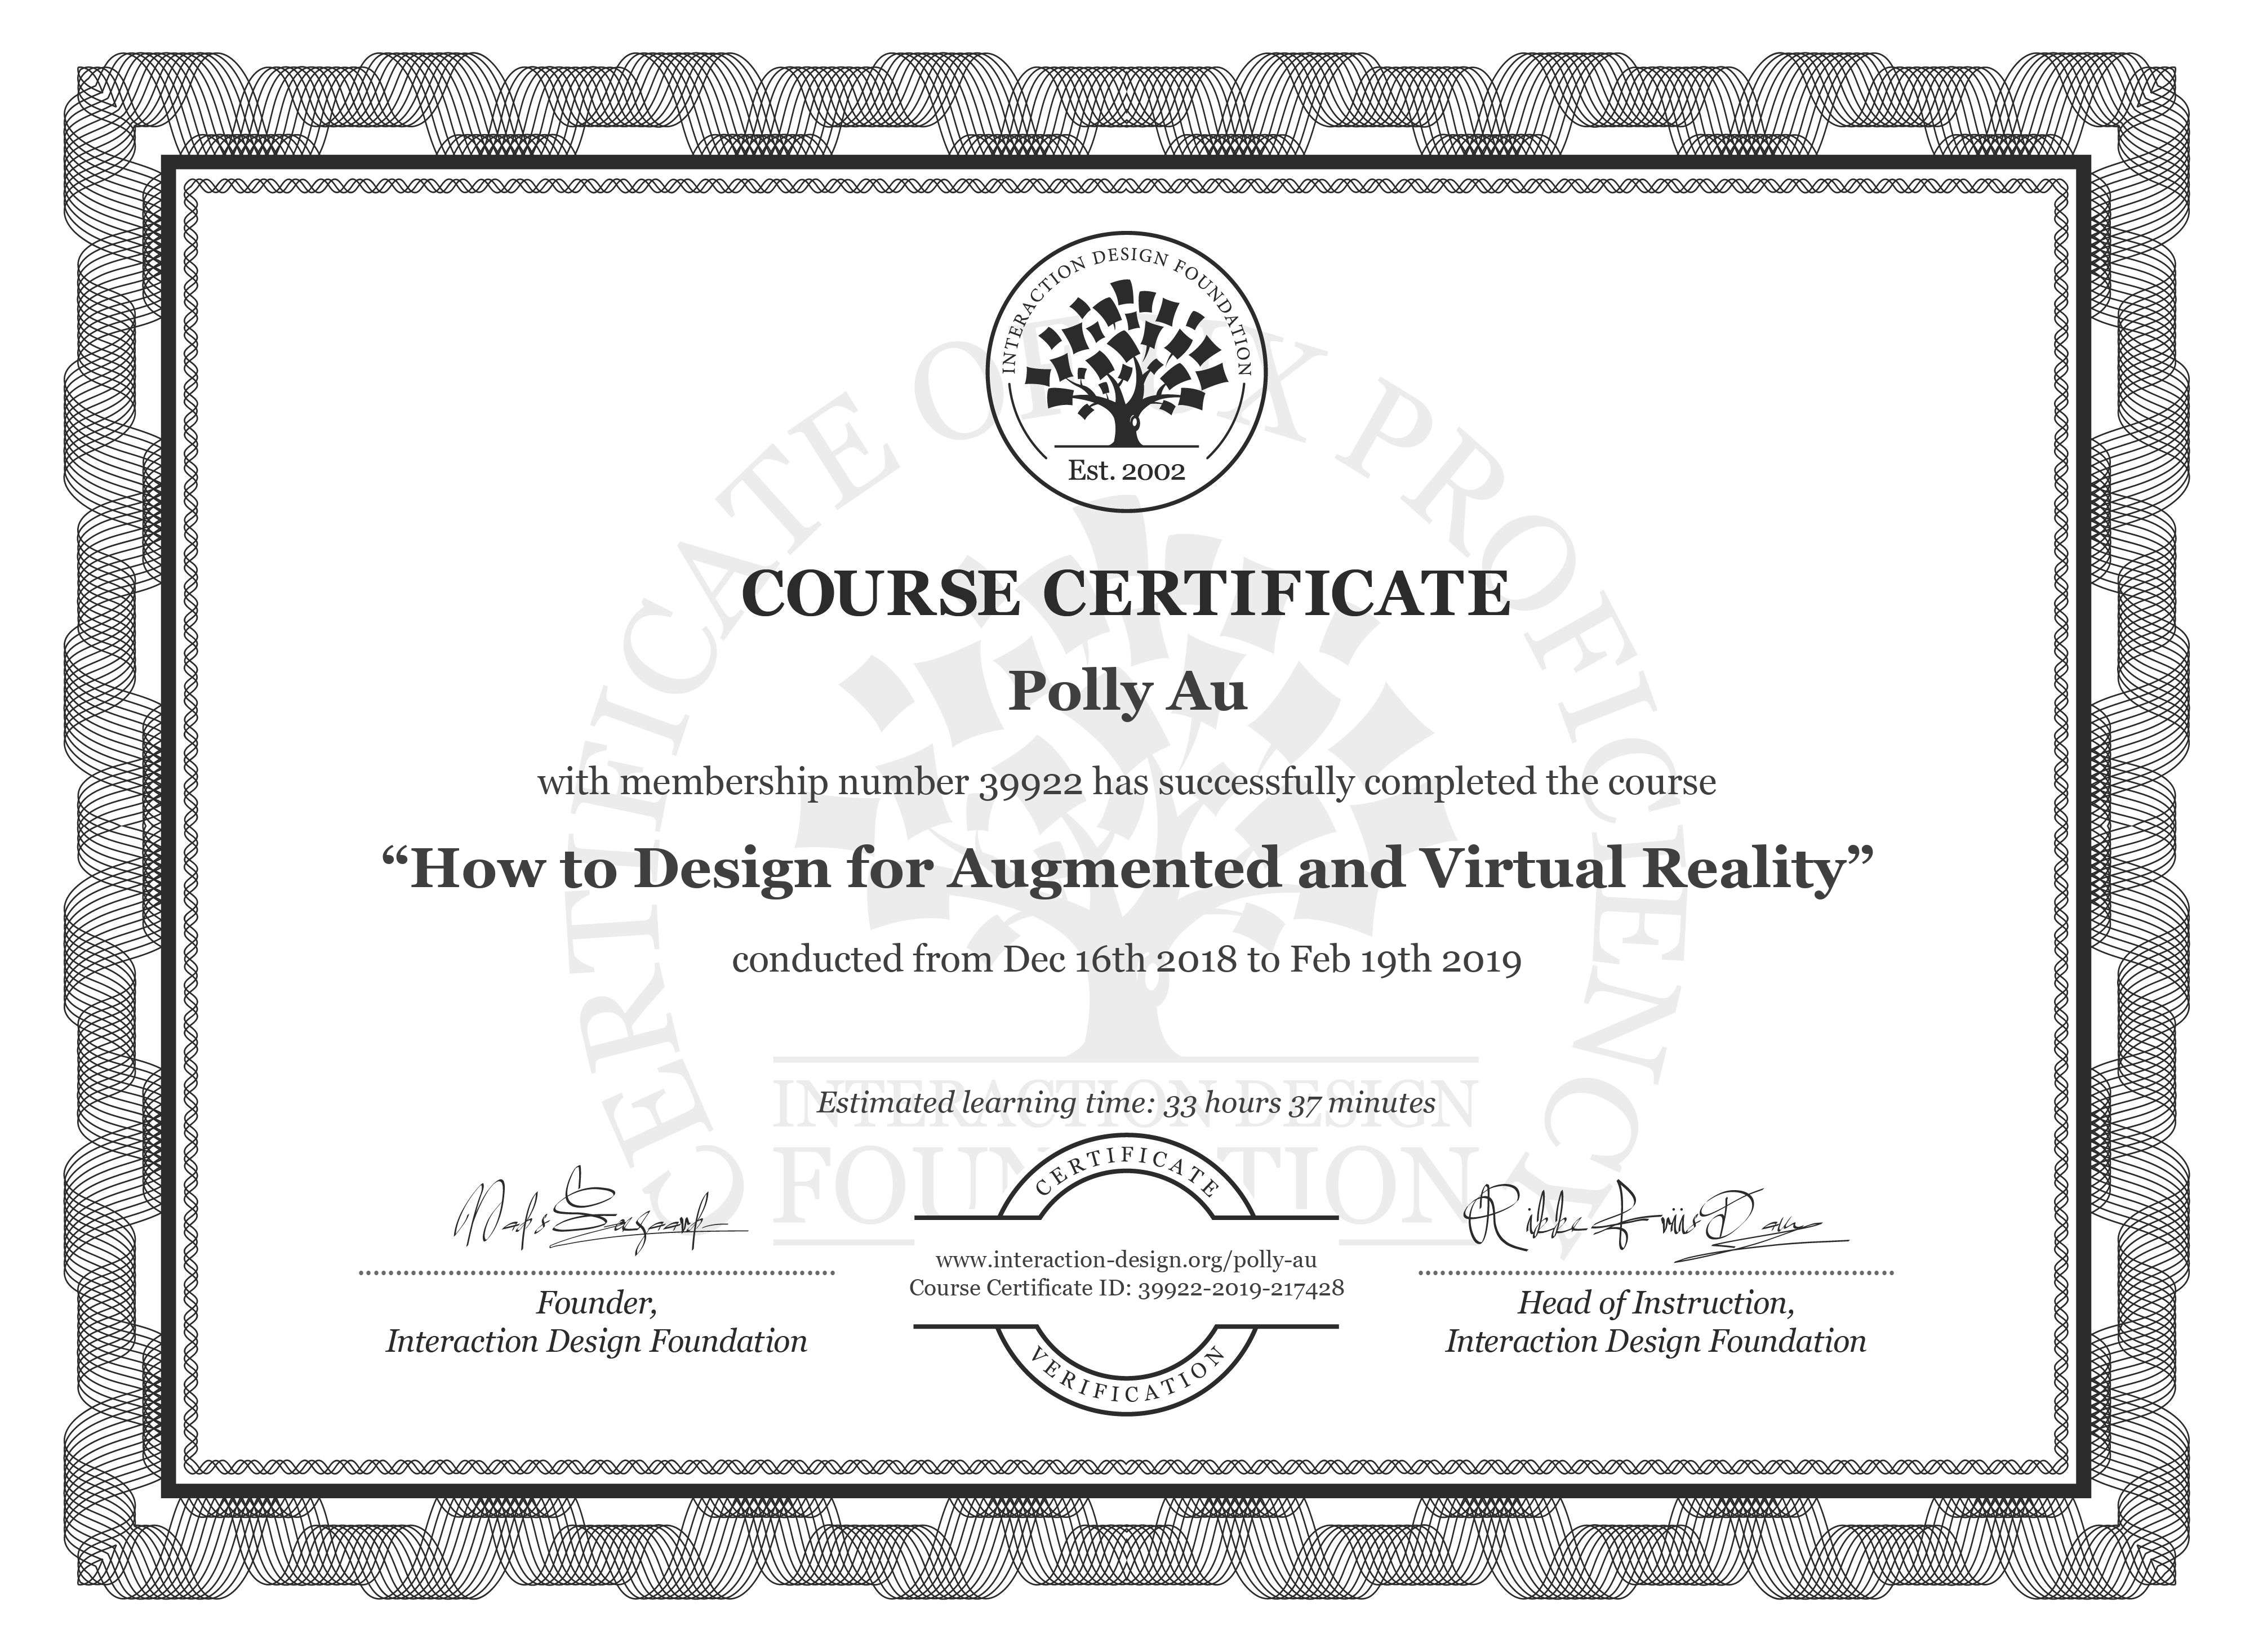 Polly Au: Course Certificate - How to Design for Augmented and Virtual Reality